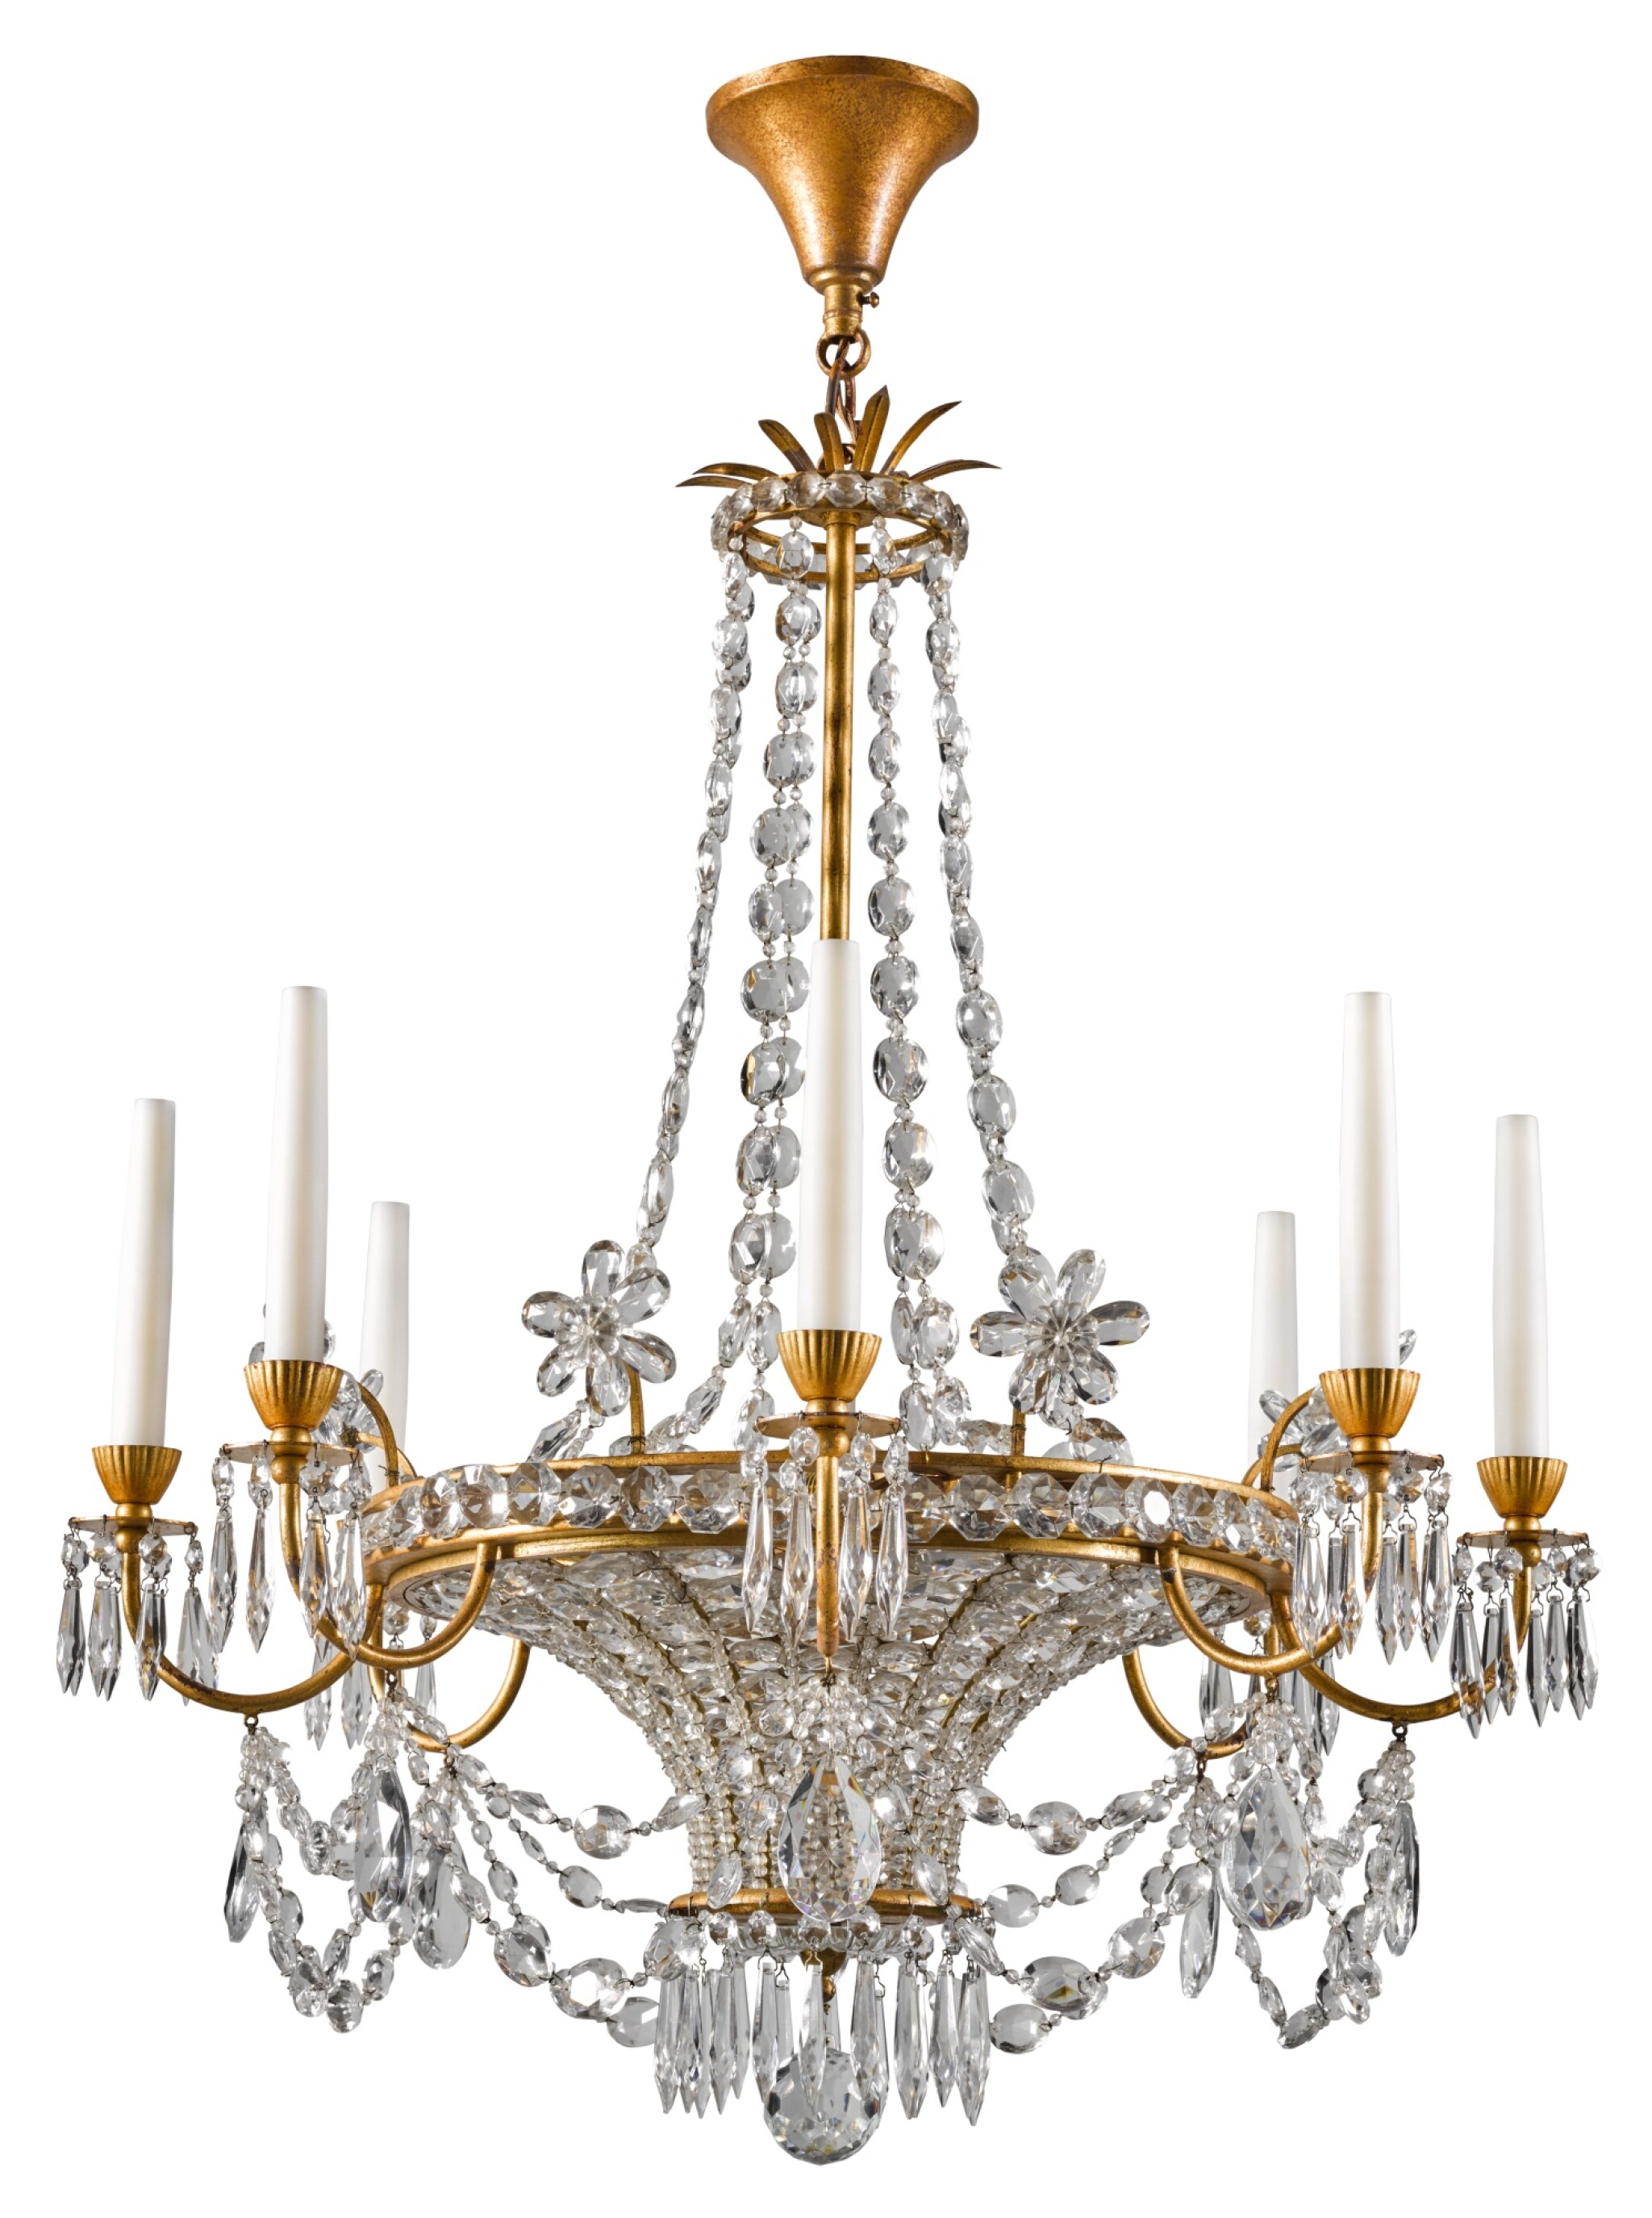 View 1 of Lot 188. AN EMPIRE STYLE GILT-METAL AND CUT GLASS EIGHT-LIGHT CHANDELIER 20TH CENTURY, POSSIBLY BY MAISON BAGUES.